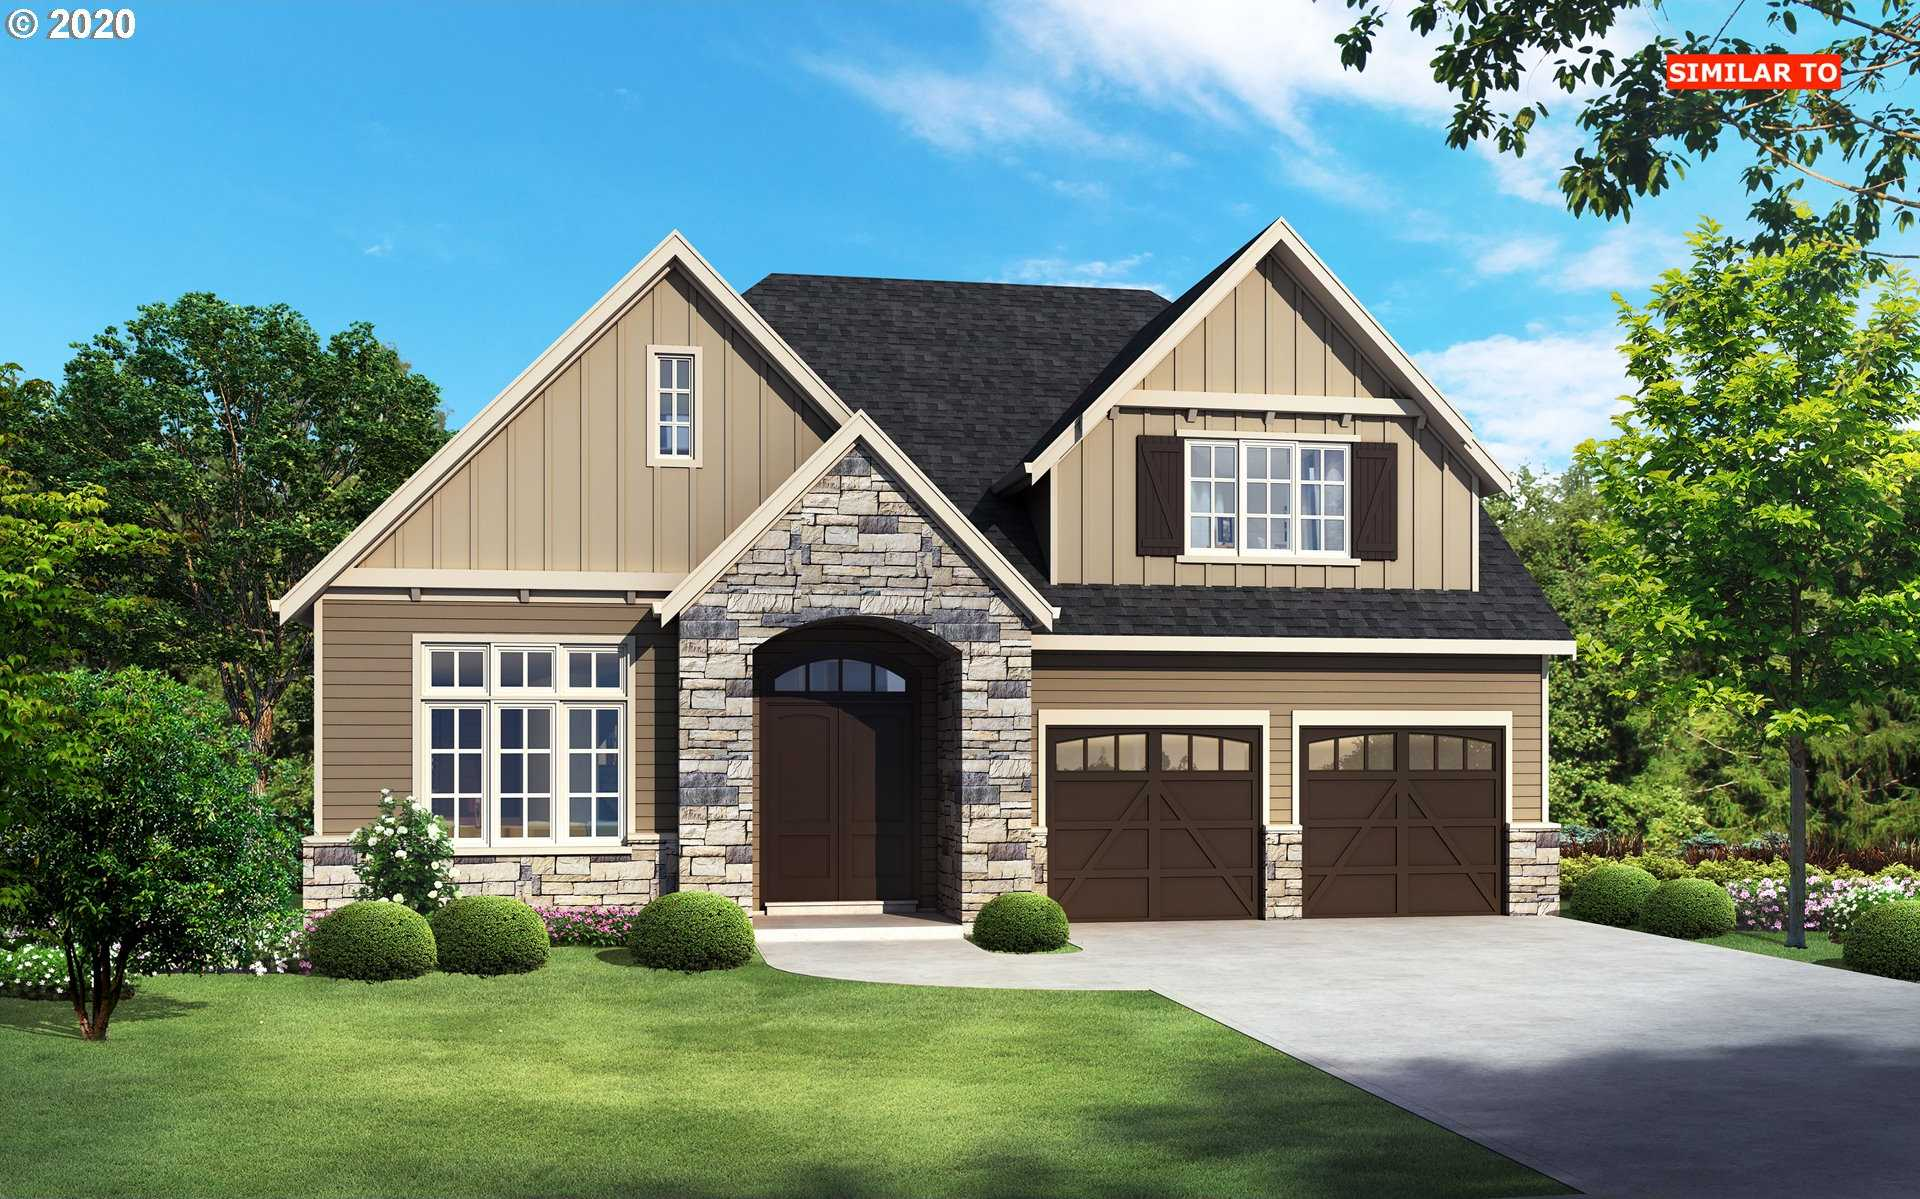 $899,000 - 4Br/3Ba -  for Sale in Stafford Meadows At Frog Pond, Wilsonville